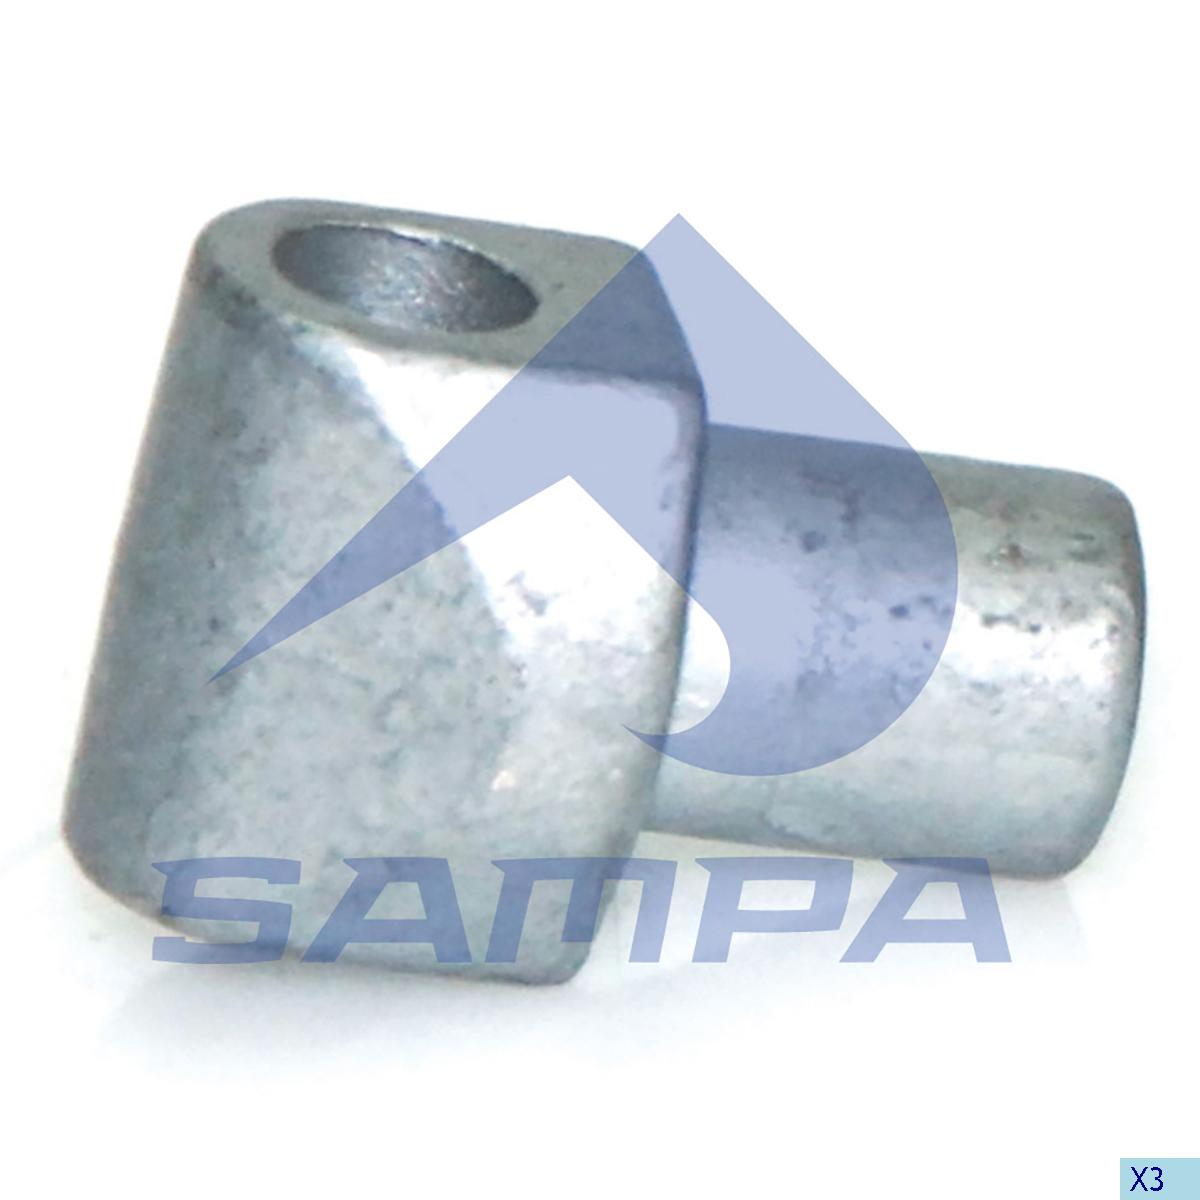 Spring Arm, Trailer Coupling, Ringfeder, Complementary Equipment